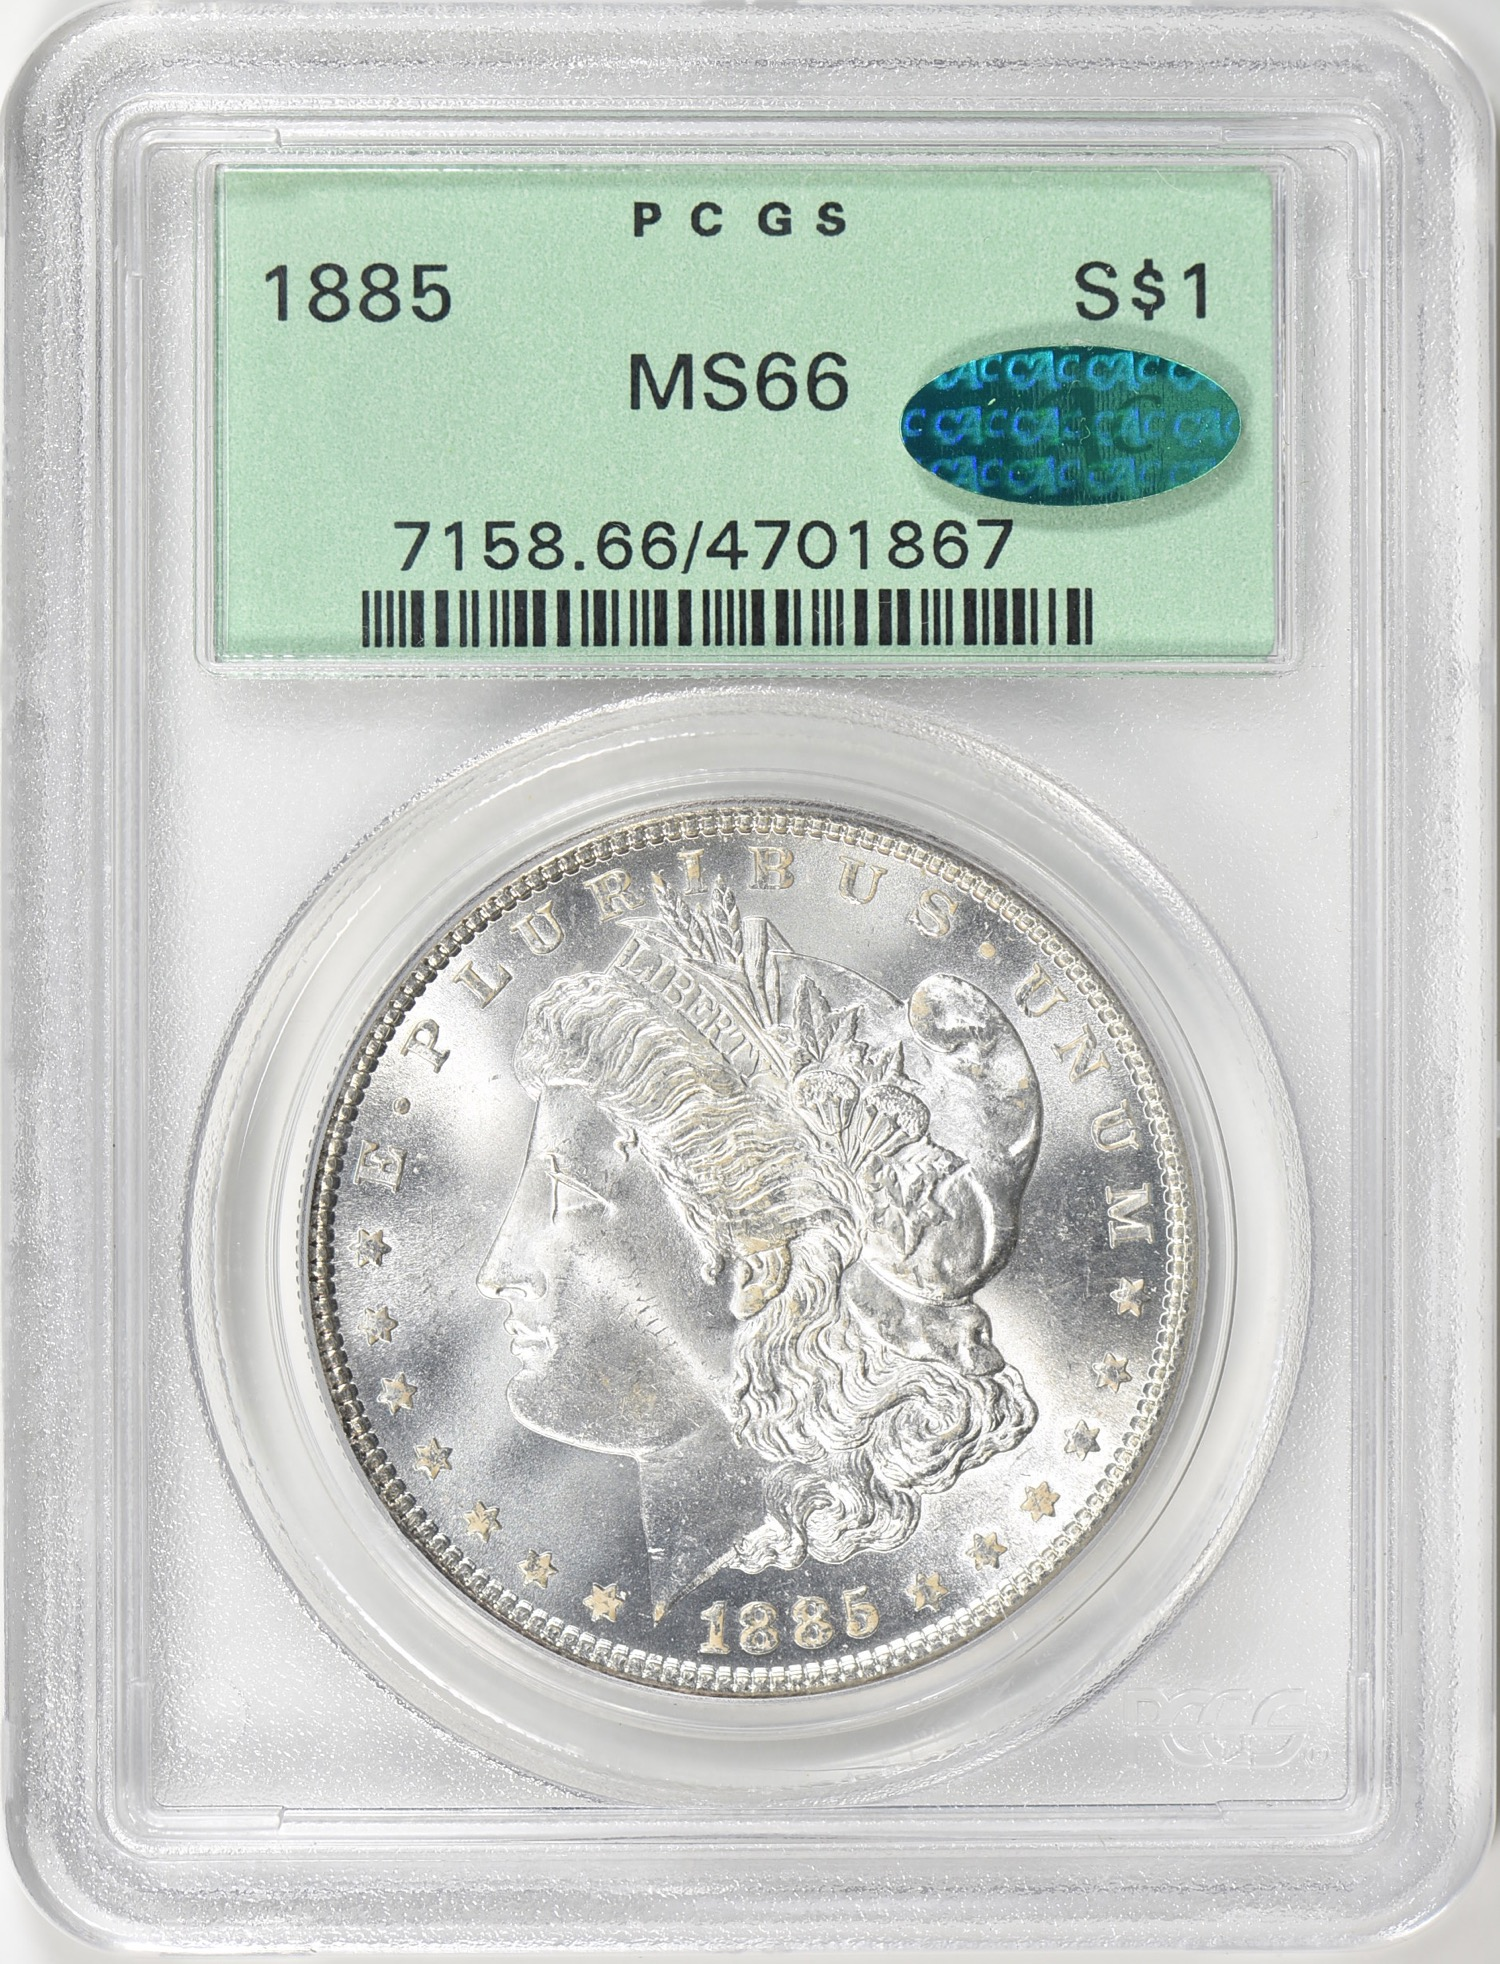 1885 MS66 CAC OGH - Acquired GreatCollections May 20, 2018. Continuing my collection of Gem Morgan's in CAC | OGH